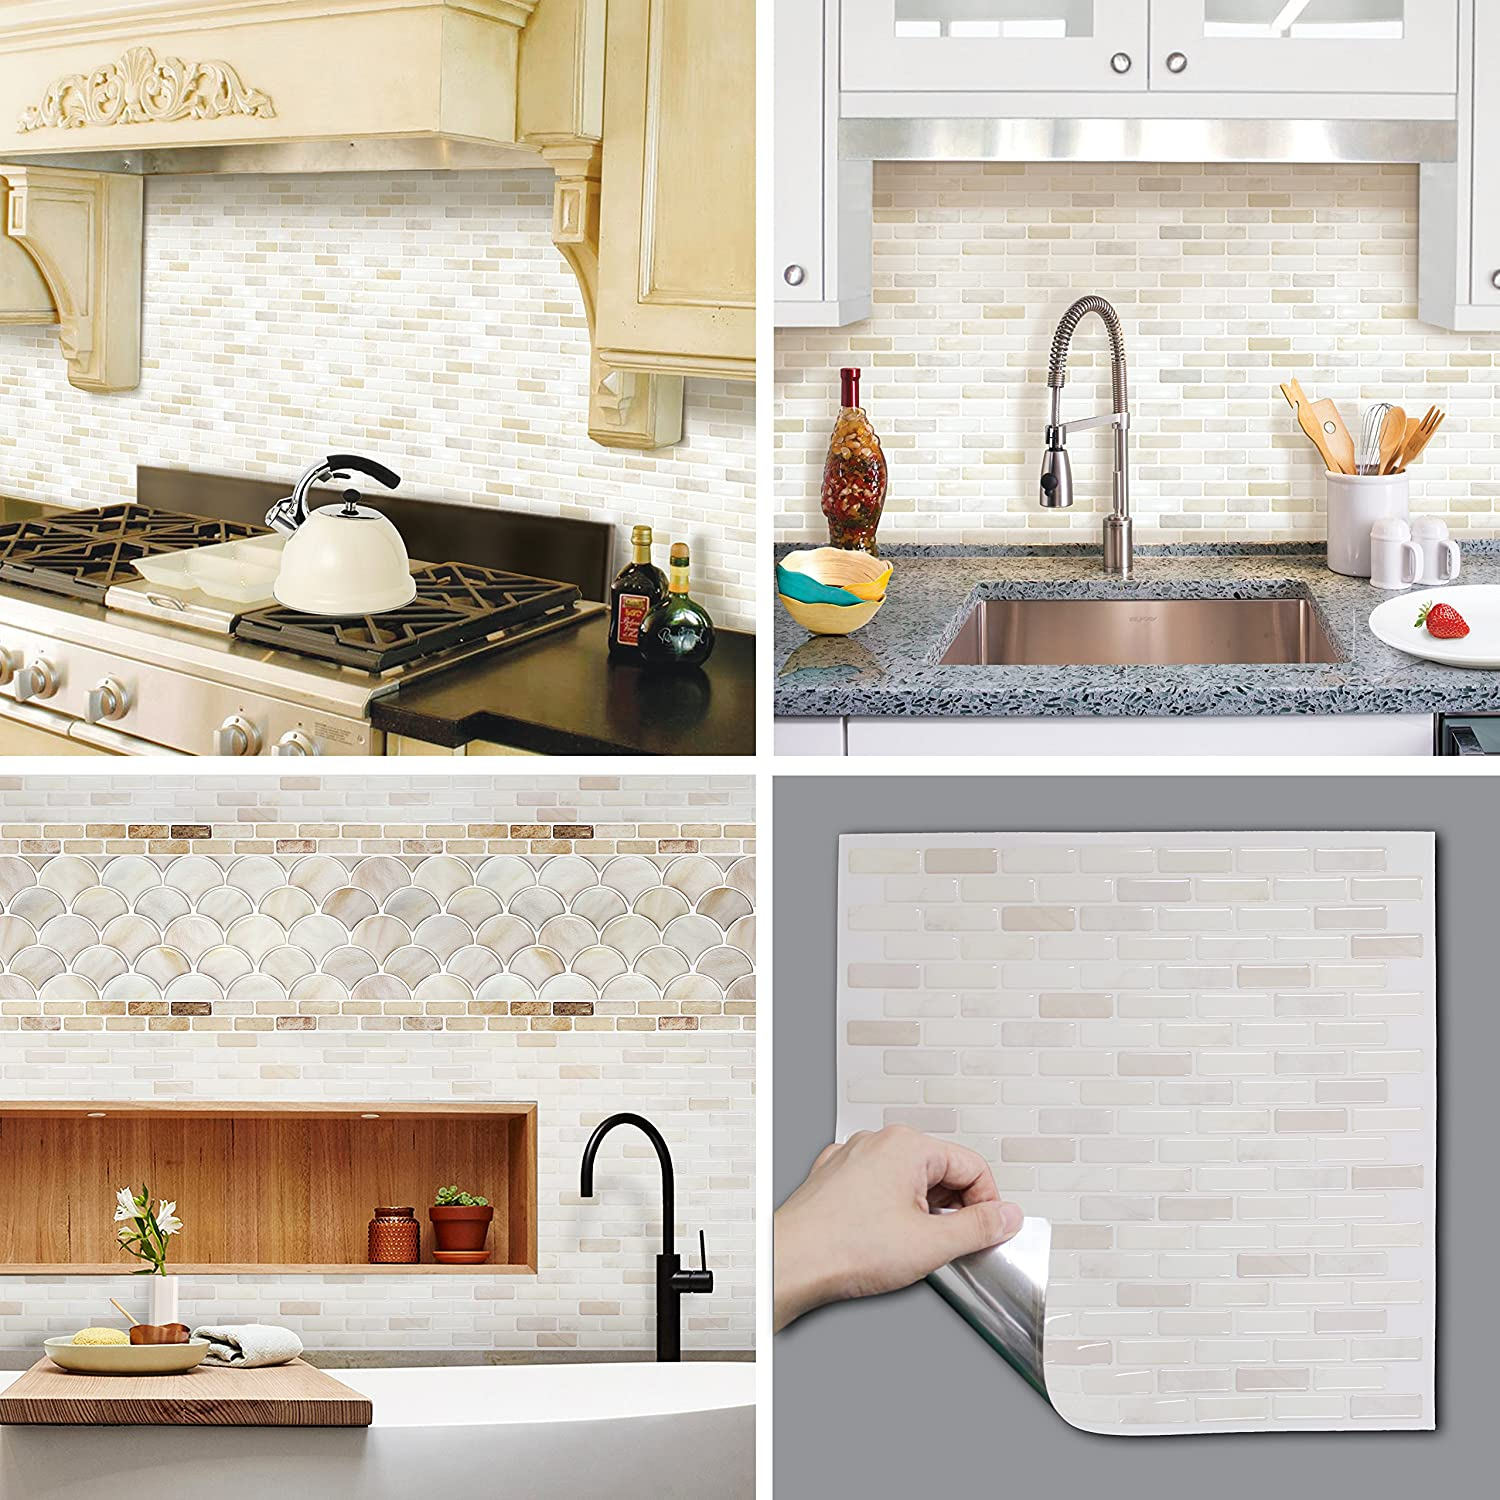 Beaus Tile Decorative Tile Stickers Peel And Stick Backsplash Fire Retardant Tile Sheet White Brick 2 12 2 X 12 2 Amazon In Home Kitchen